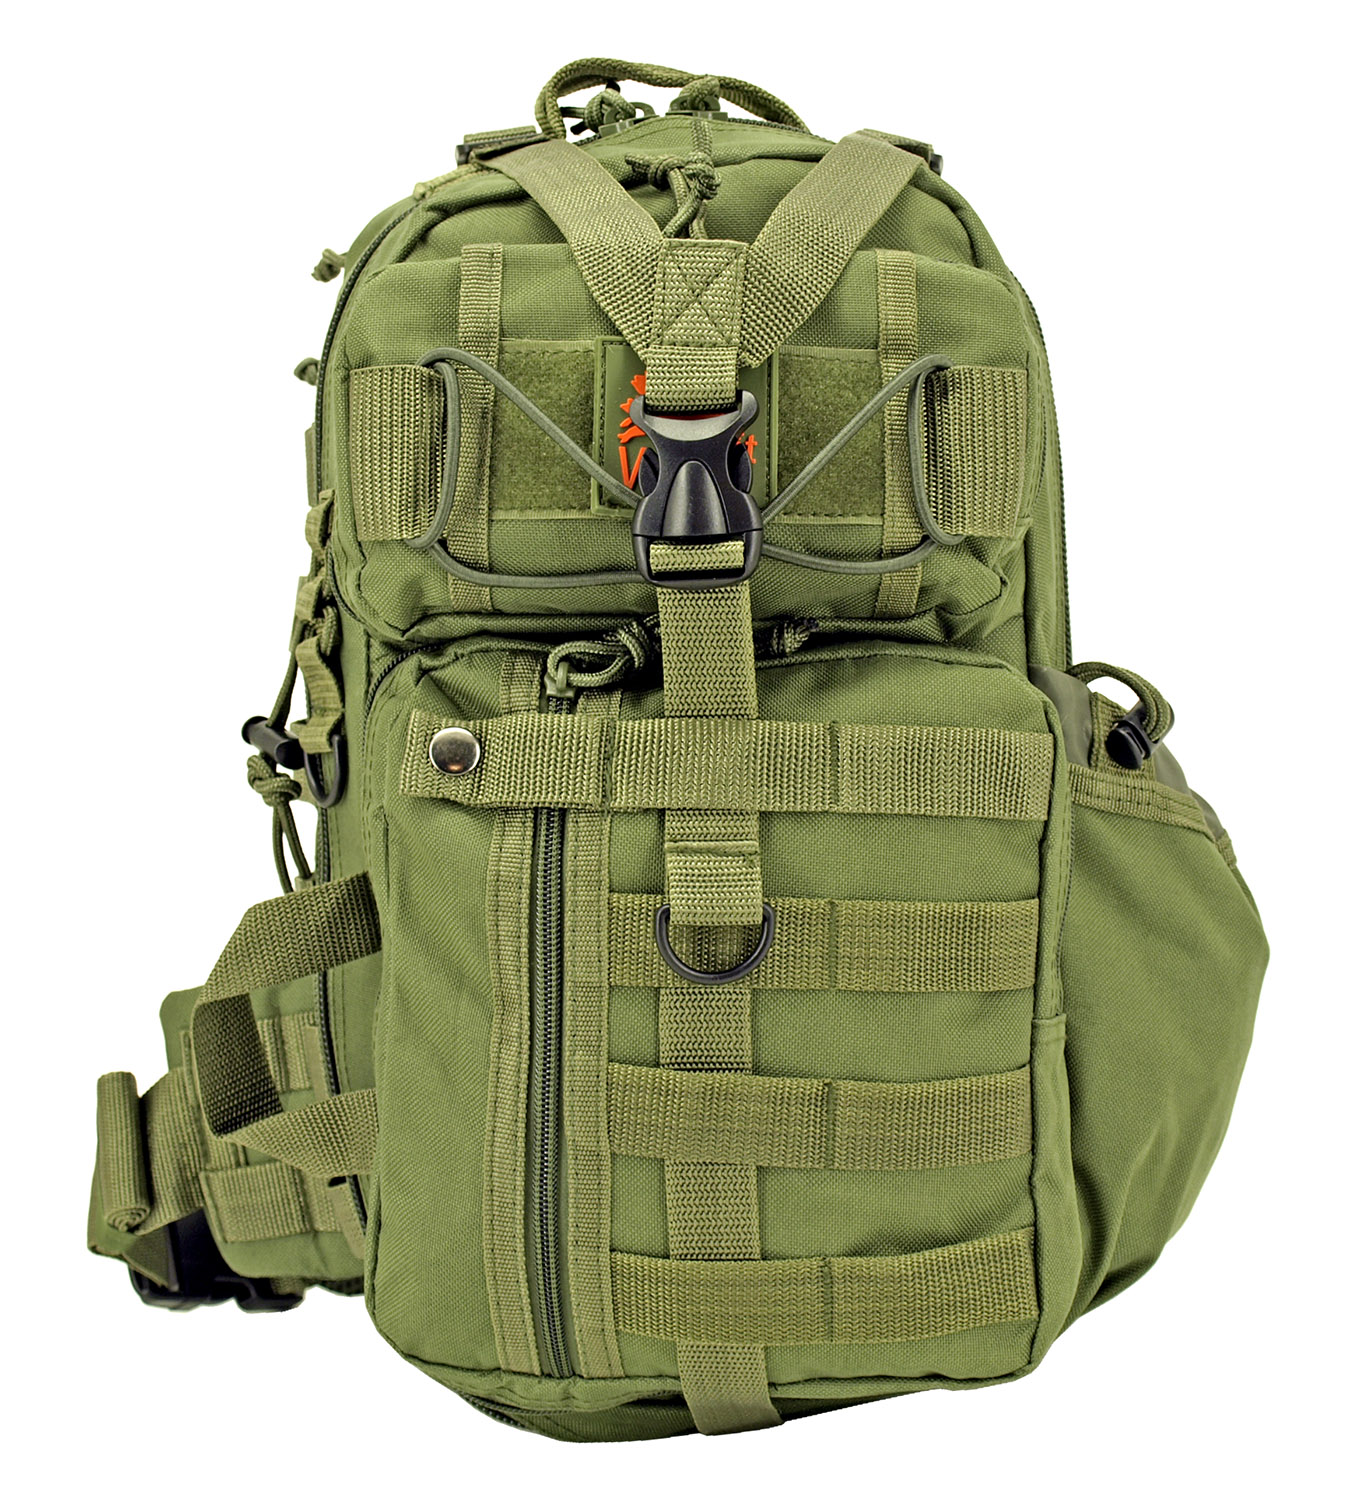 Tactical Readiness Sling Pack - Olive Green